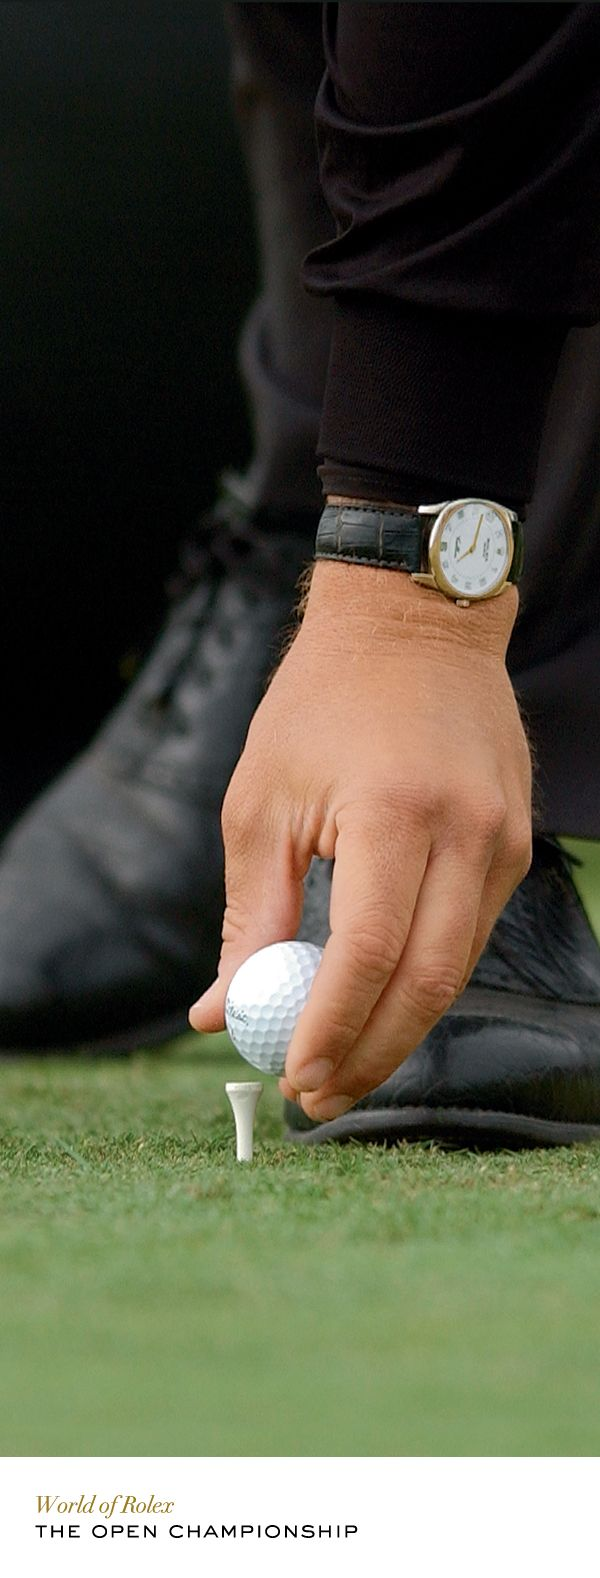 Phil Mickelson setting his golf ball on the tee. #TheOpen #Rolex #RolexOfficial